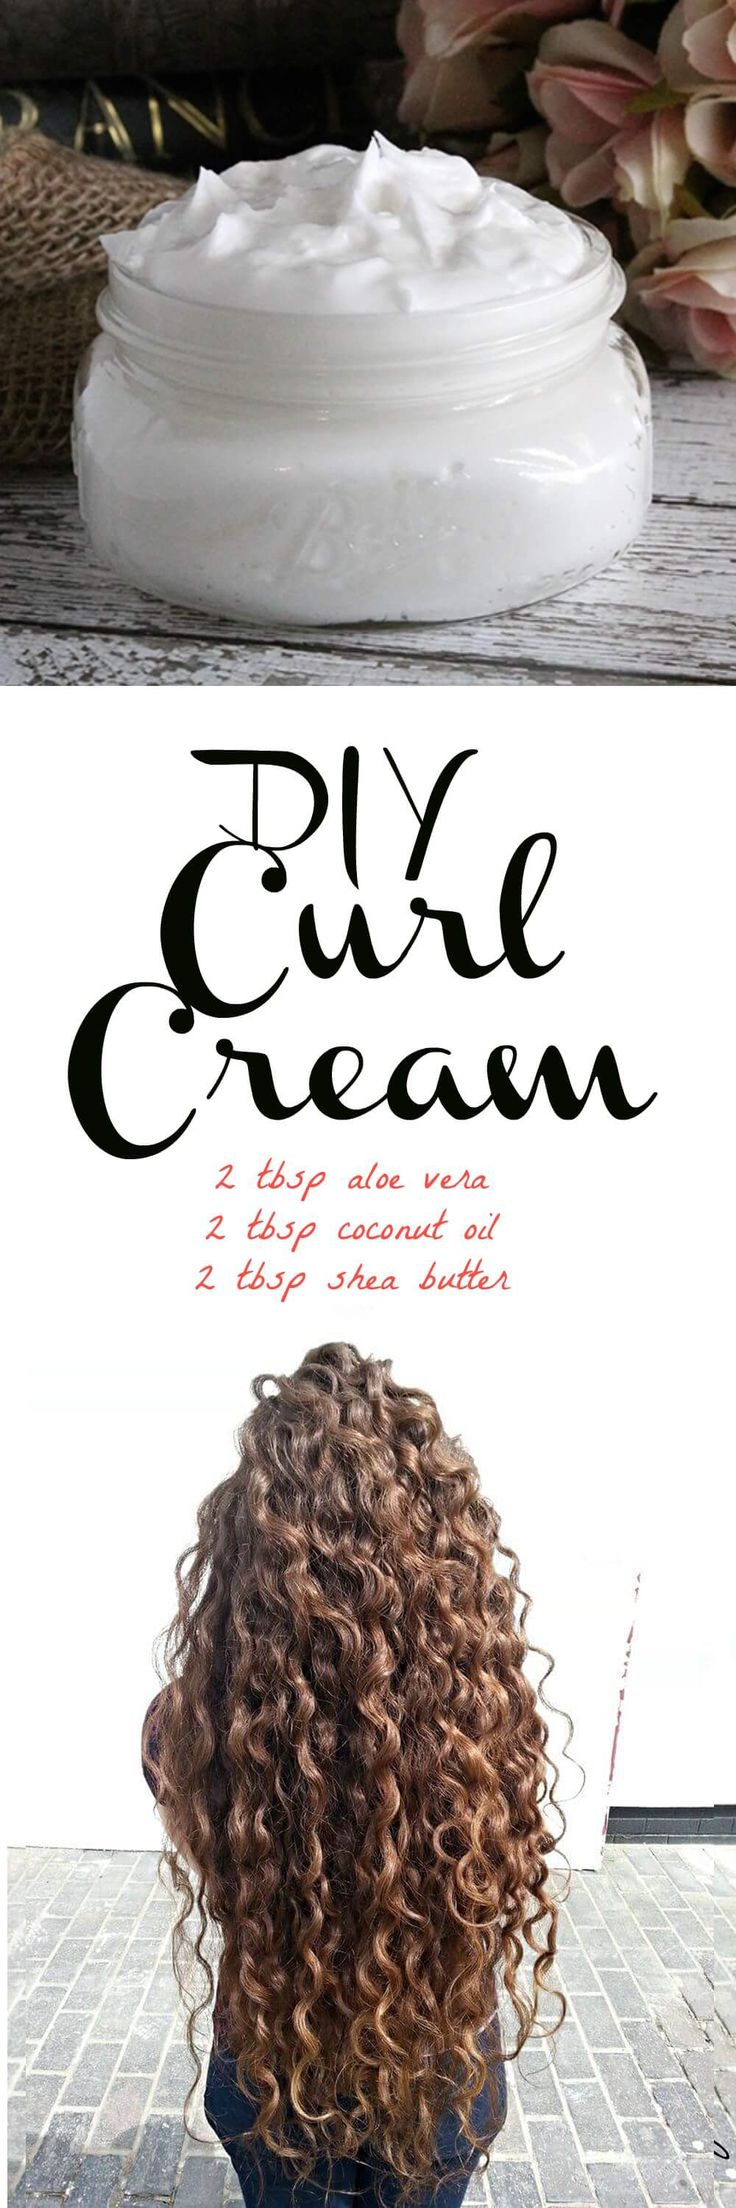 If you have curly or wavy hair, this DIY curl cream recipe will be right up your alley! Instead of saturating your hair with store bought creams and mouses that are loaded with drying alcohols